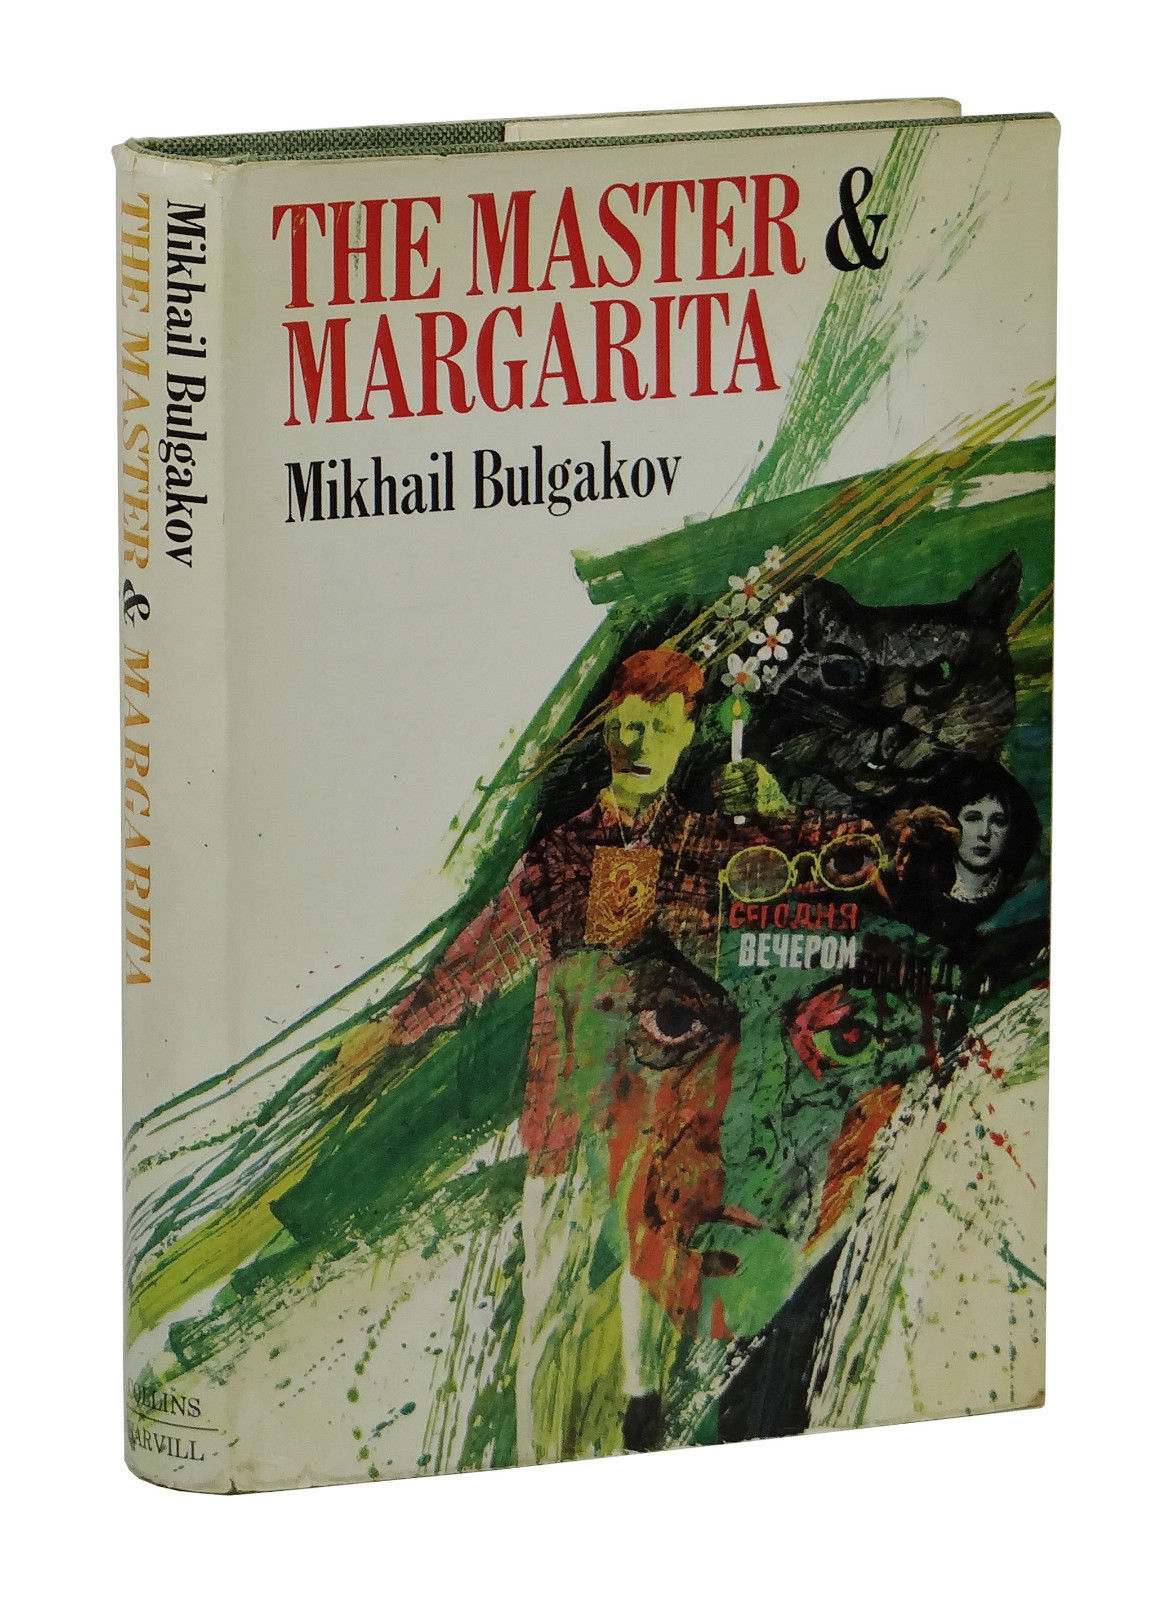 The novel Master and Margarita: the image of Margarita